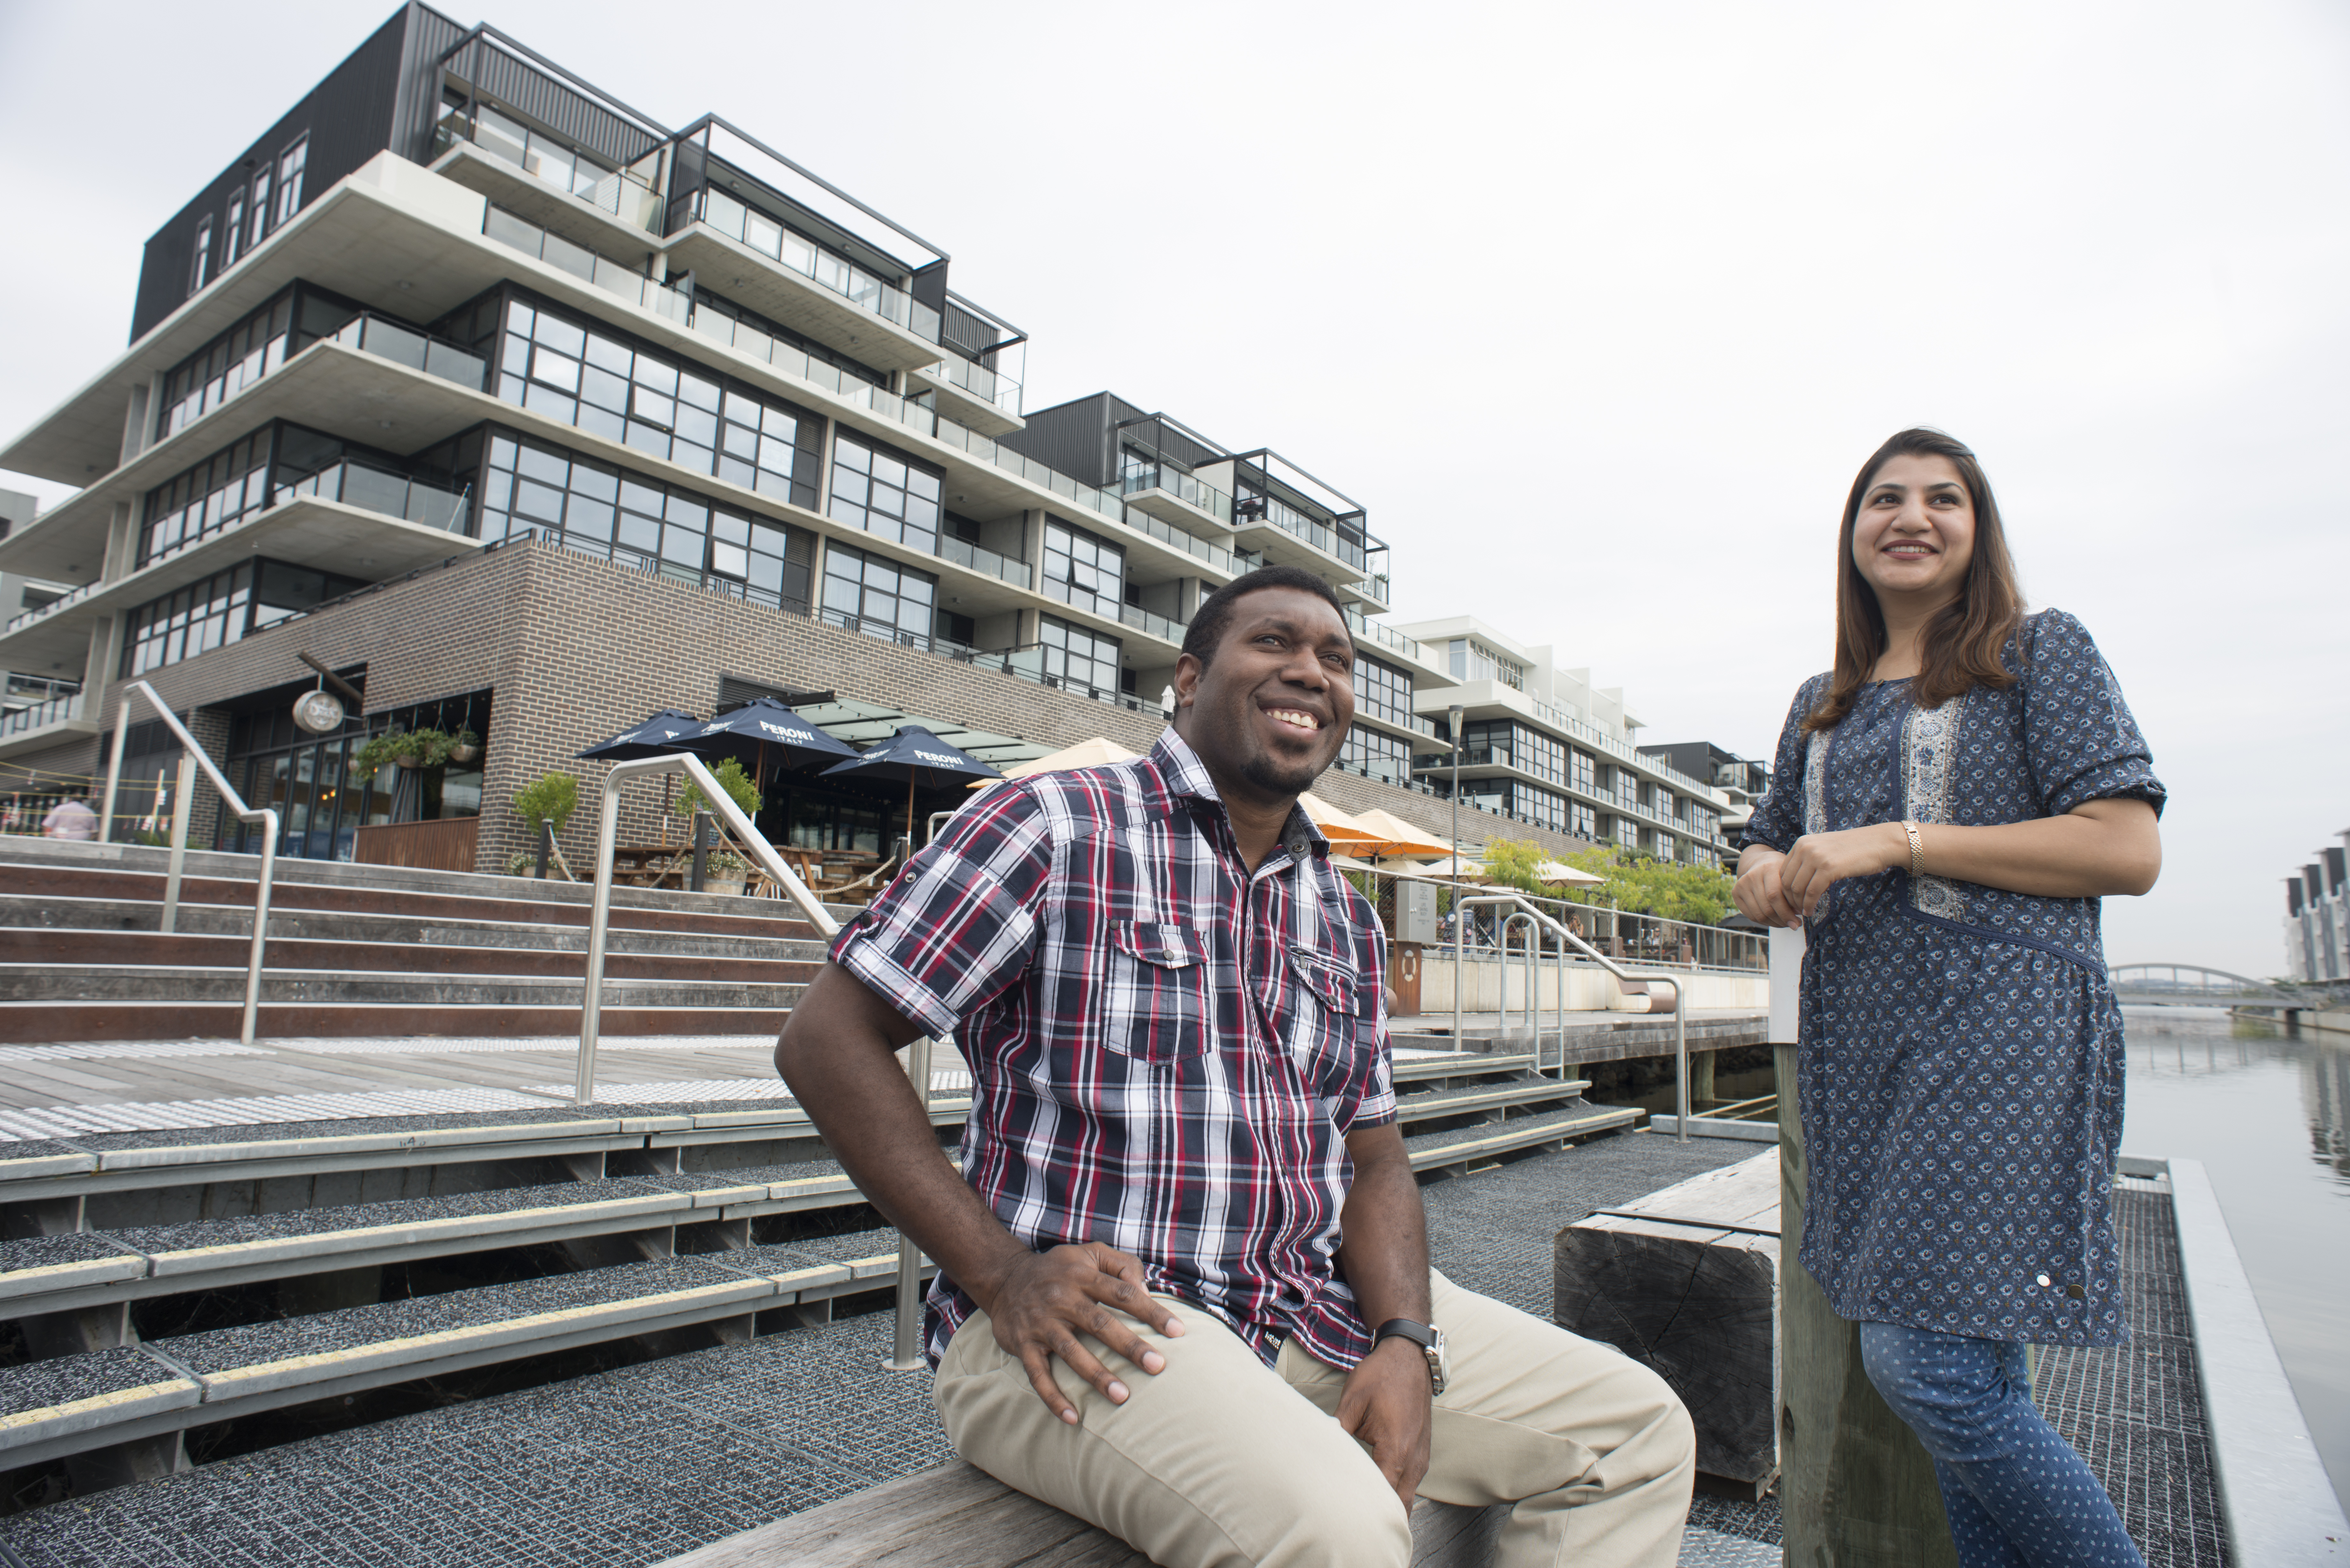 Image of two people at the Kingston foreshore.